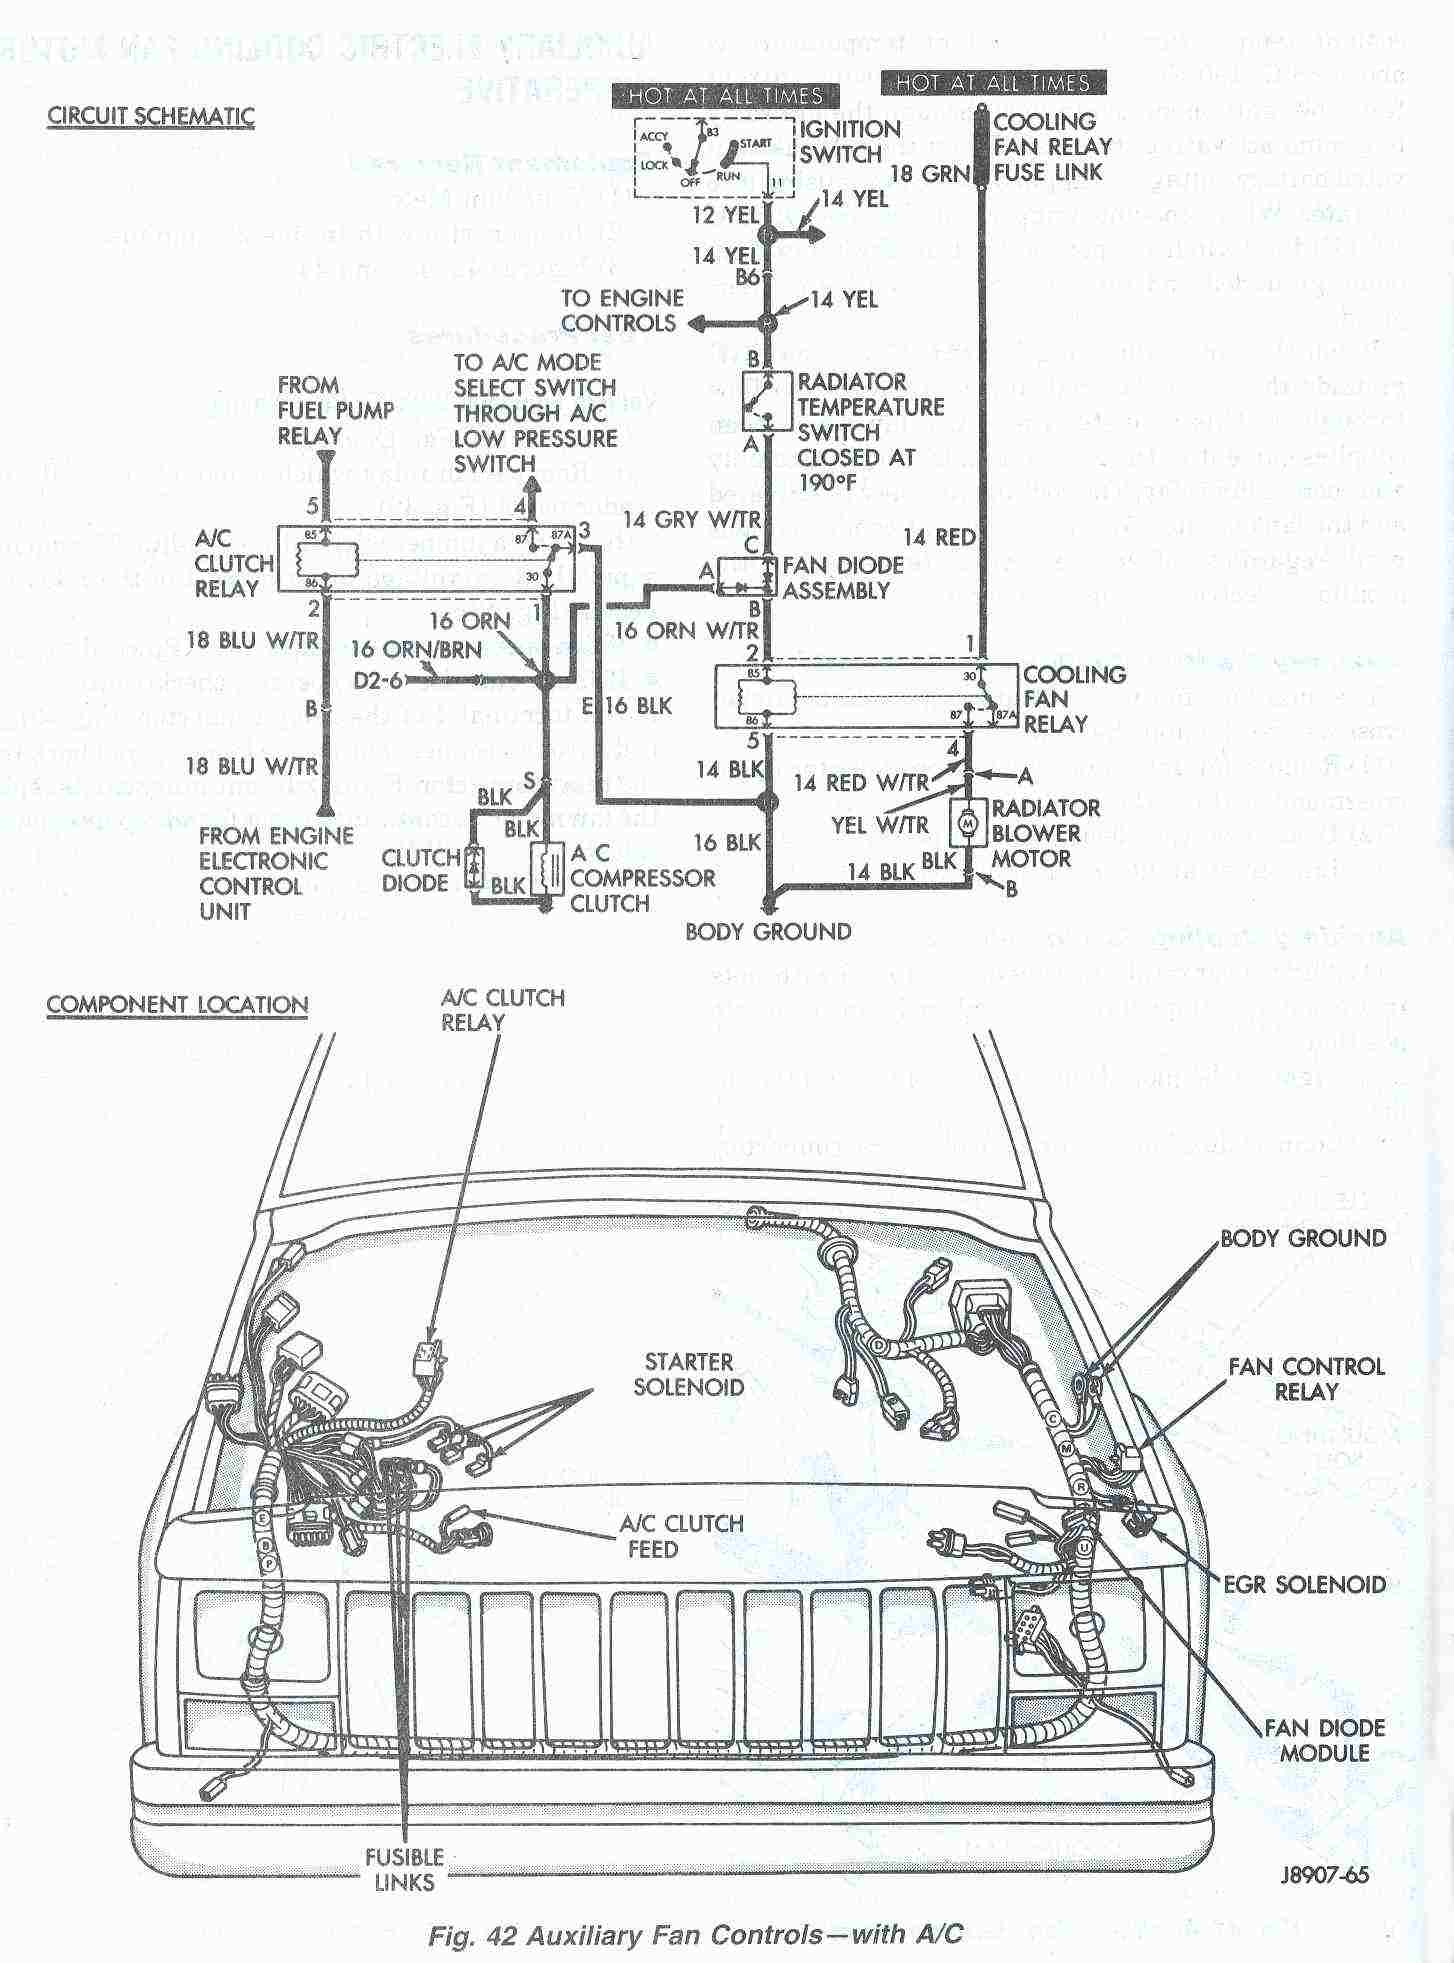 Auxiliary_Fan_Schematic_Fig_42 jeep cherokee cooling system electric cooling fan 1989 jeep cherokee wiring diagram at creativeand.co